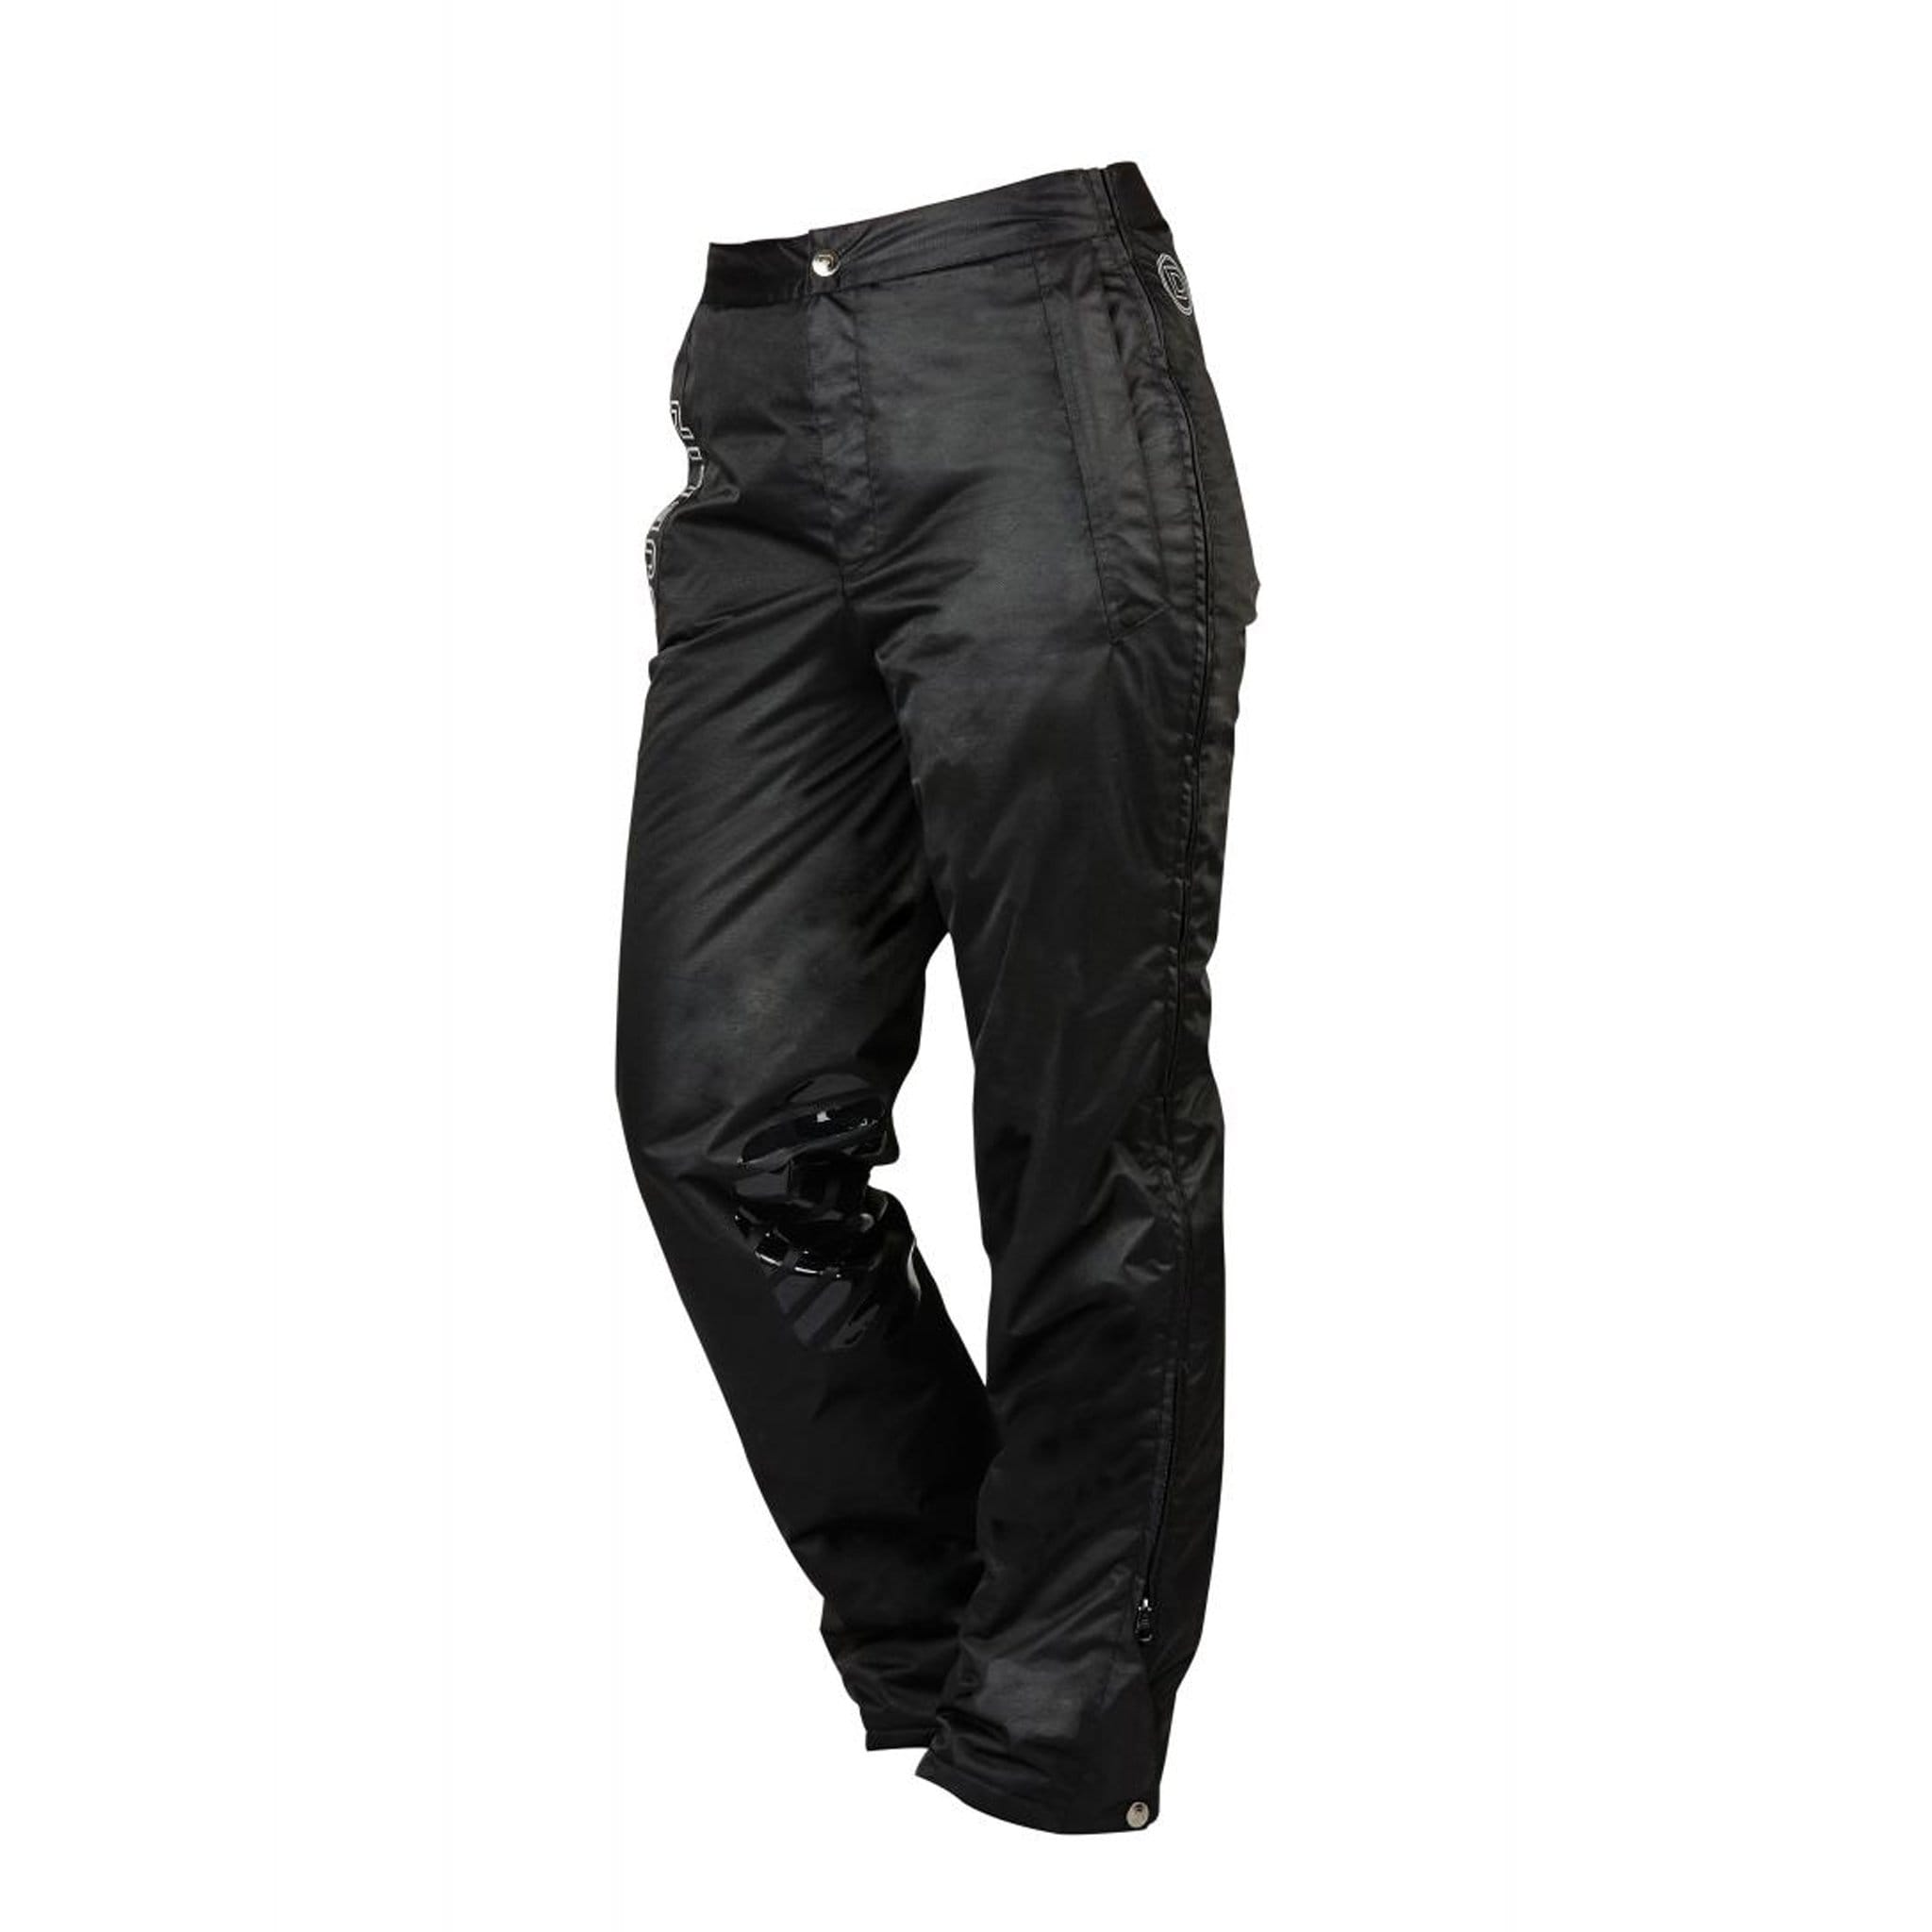 Dublin Unisex Thermal Waterproof Overtrousers